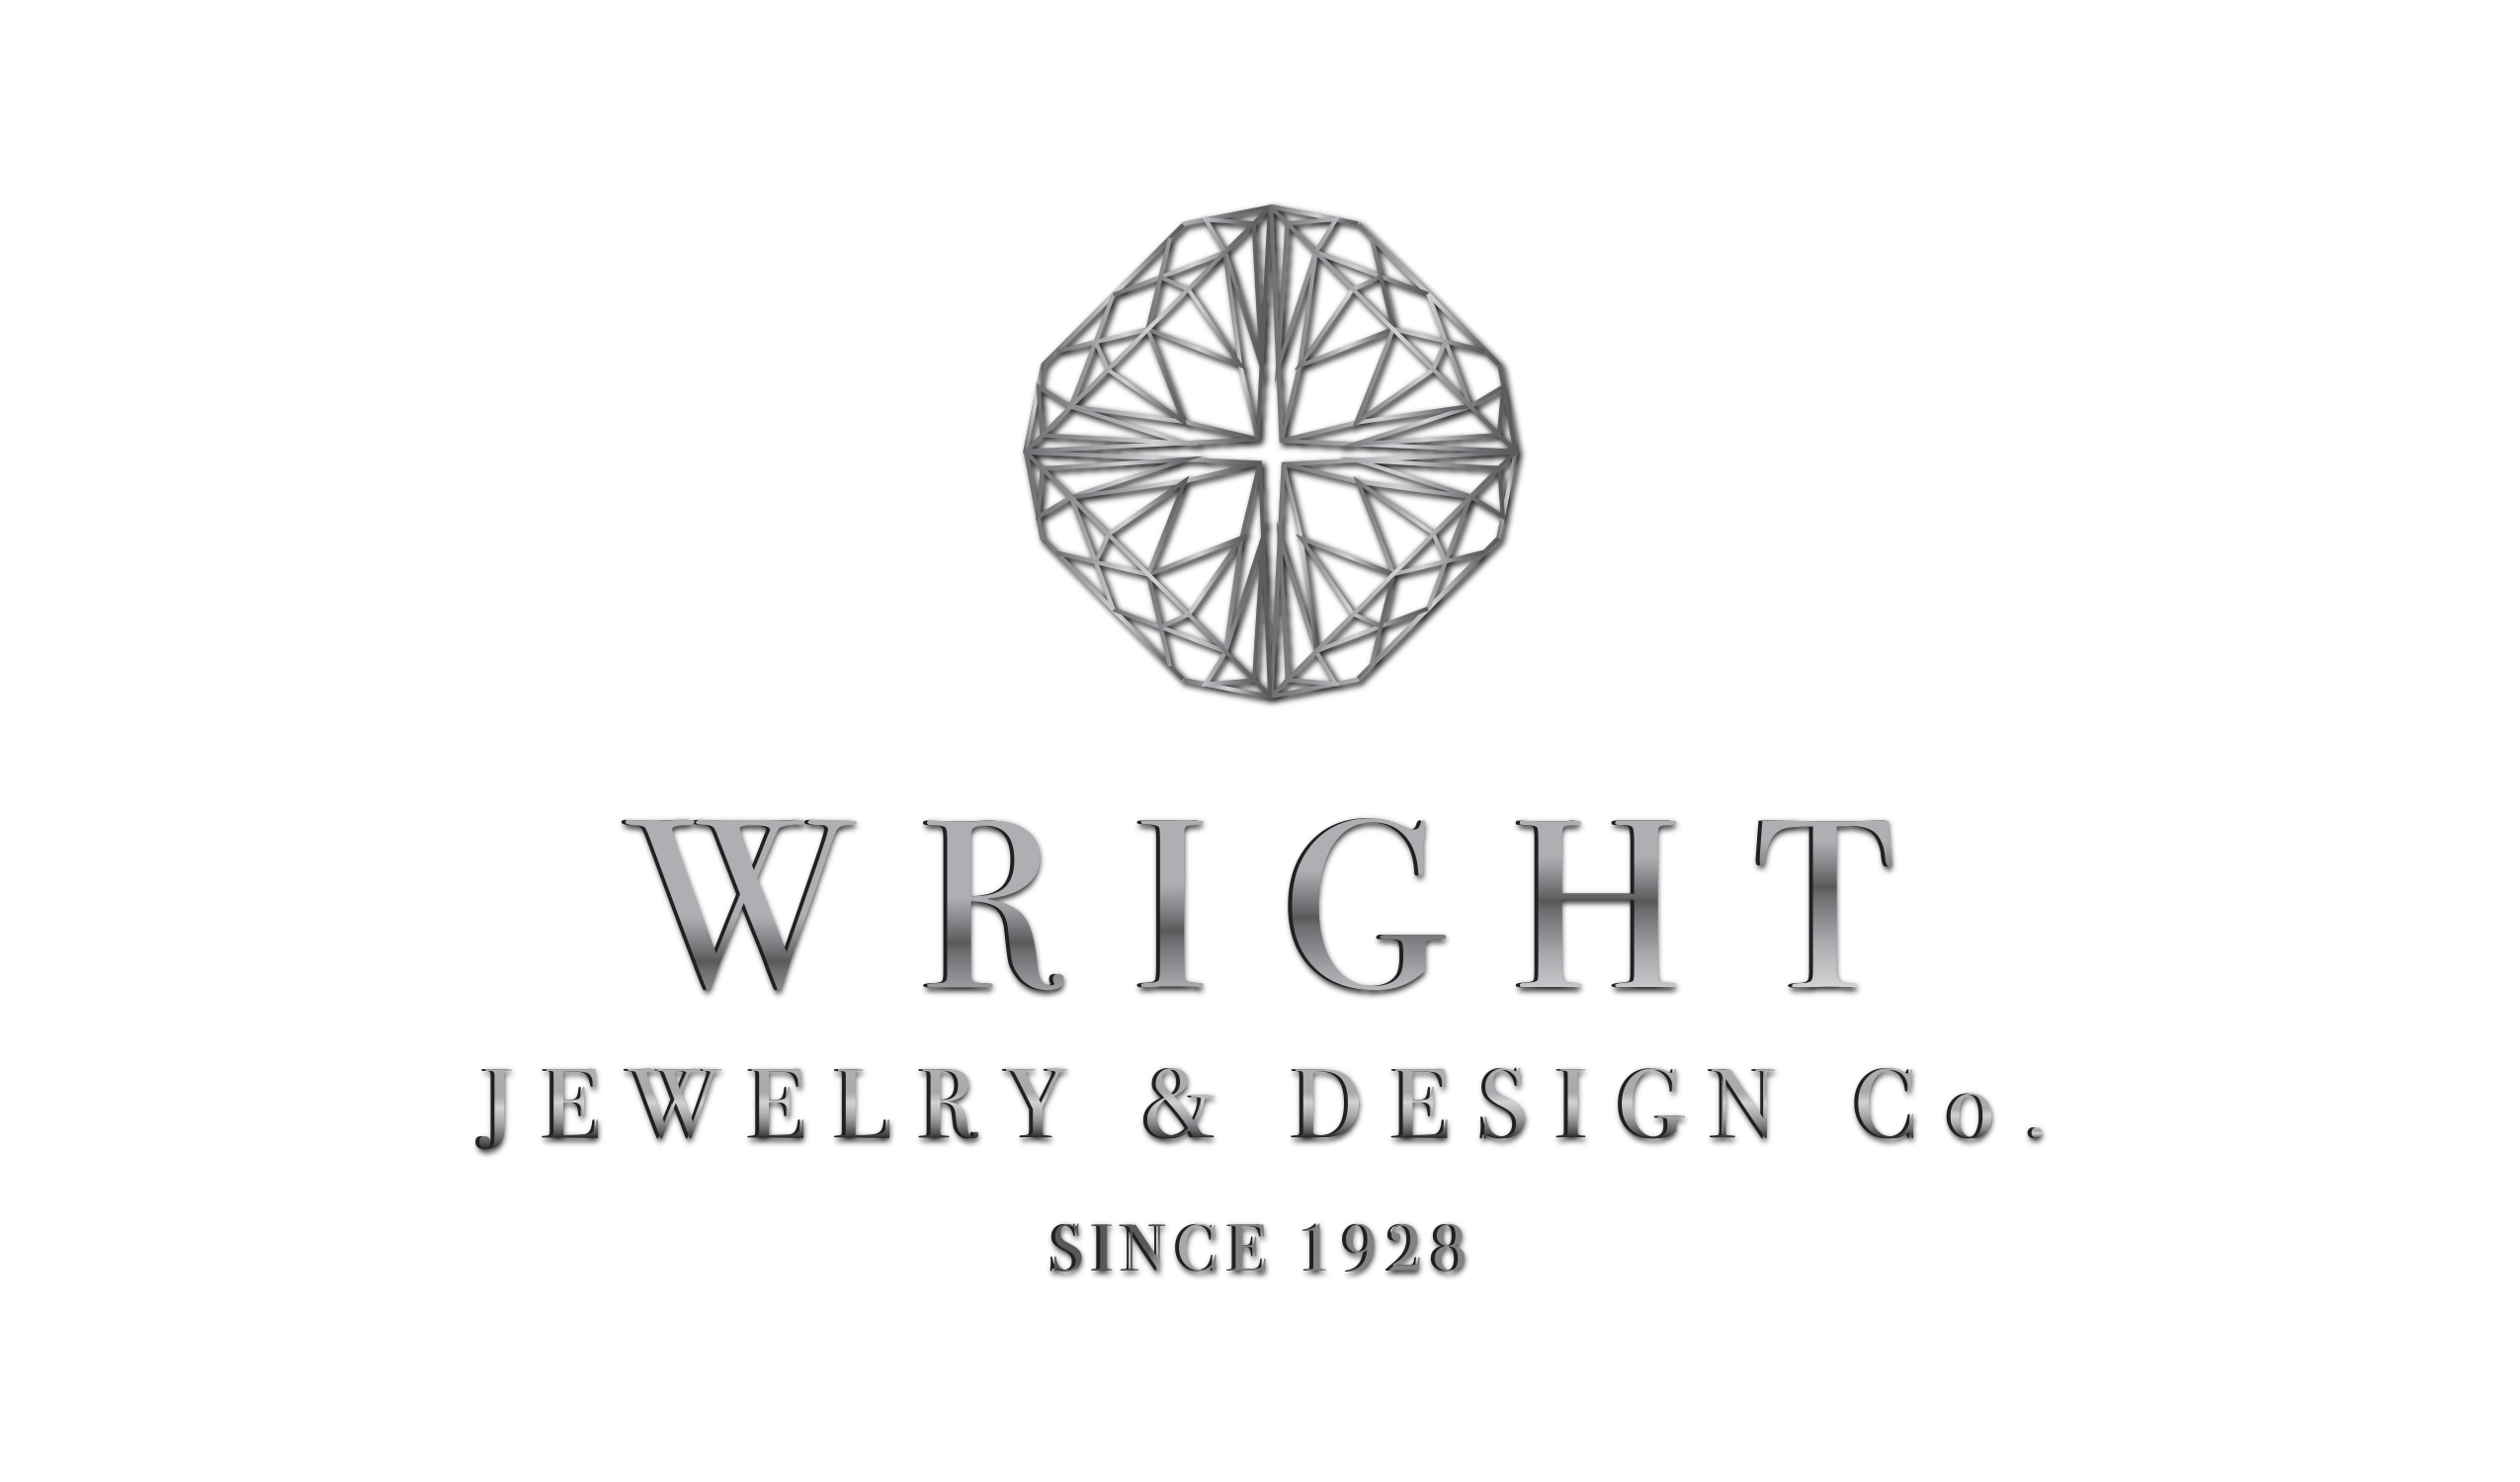 Wright Jewelry & Design Co.